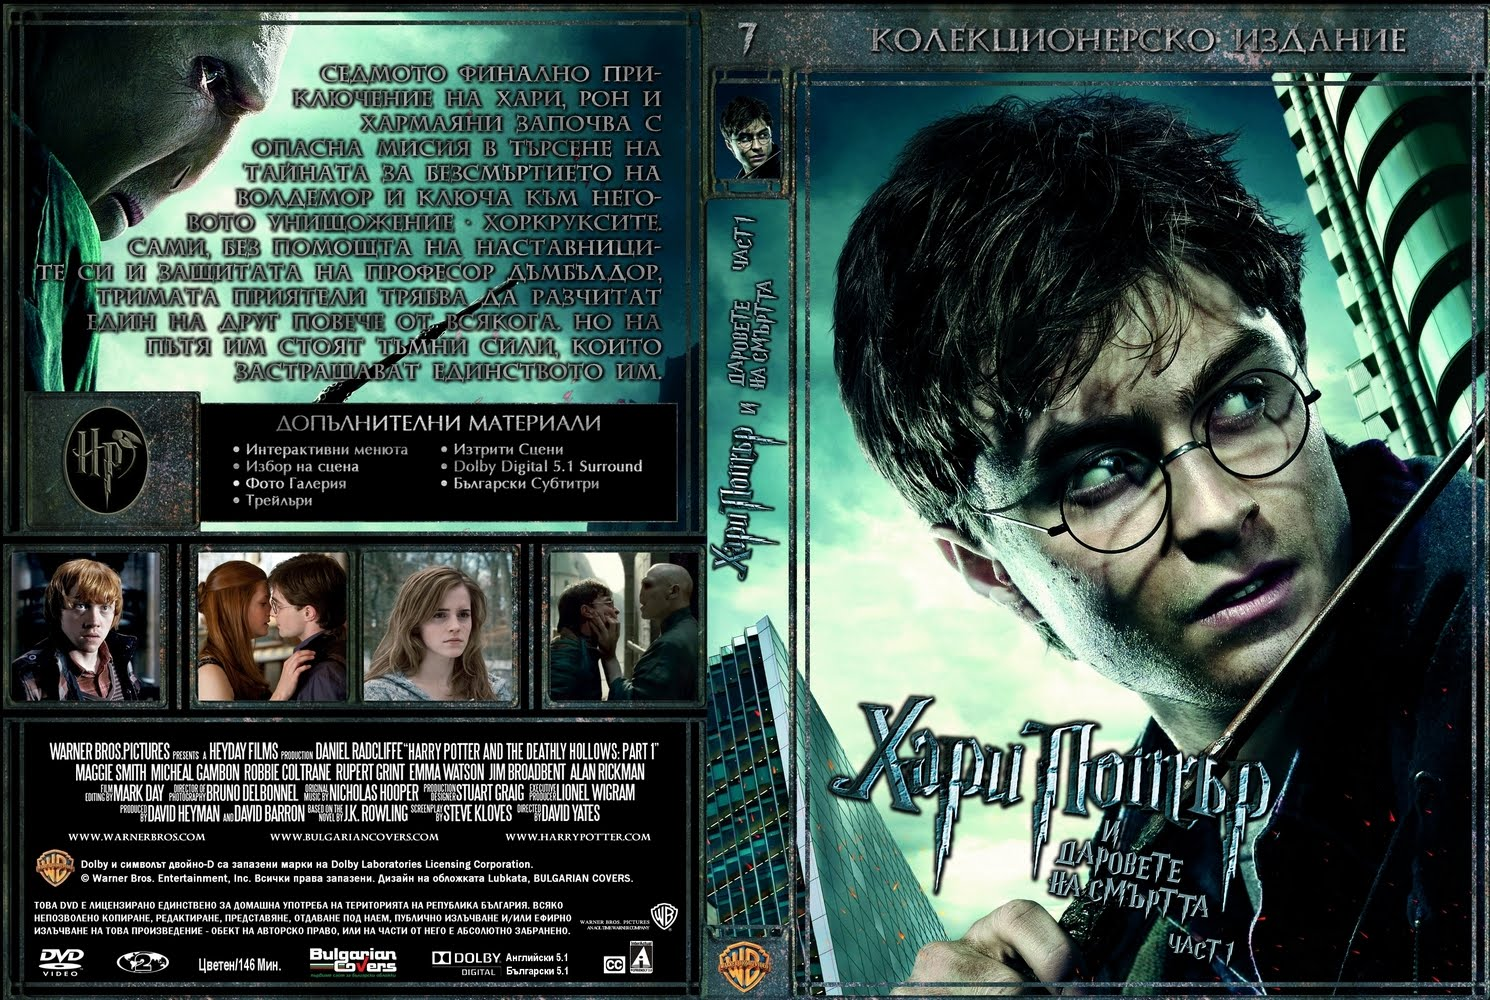 harry potter and the deathly hallows part 2 script